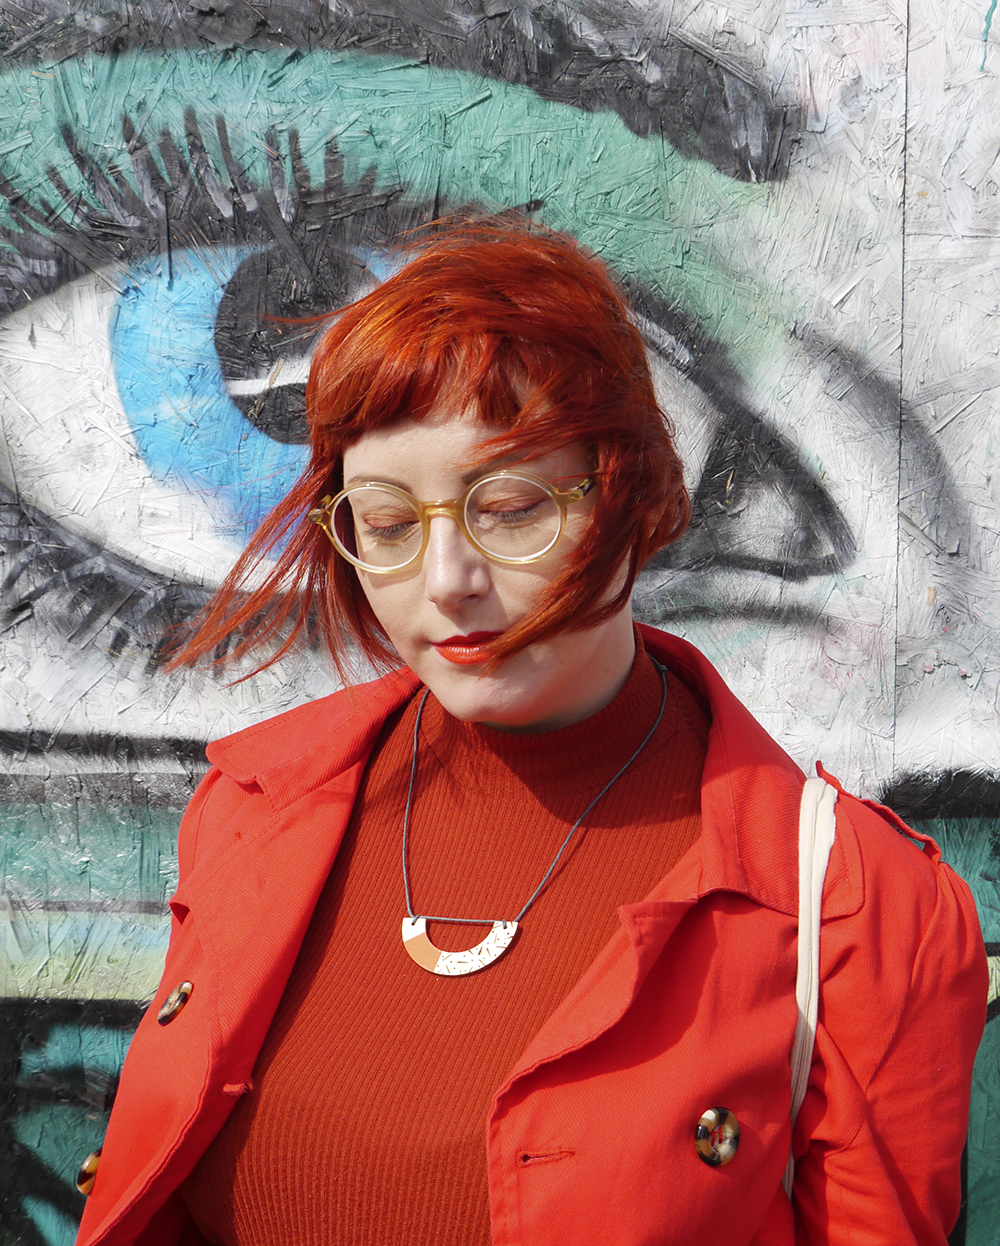 Dundee style blogger Helen from Wardrobe Conversations wear CrossEyes glasses with red eye make up and red and orange outfit